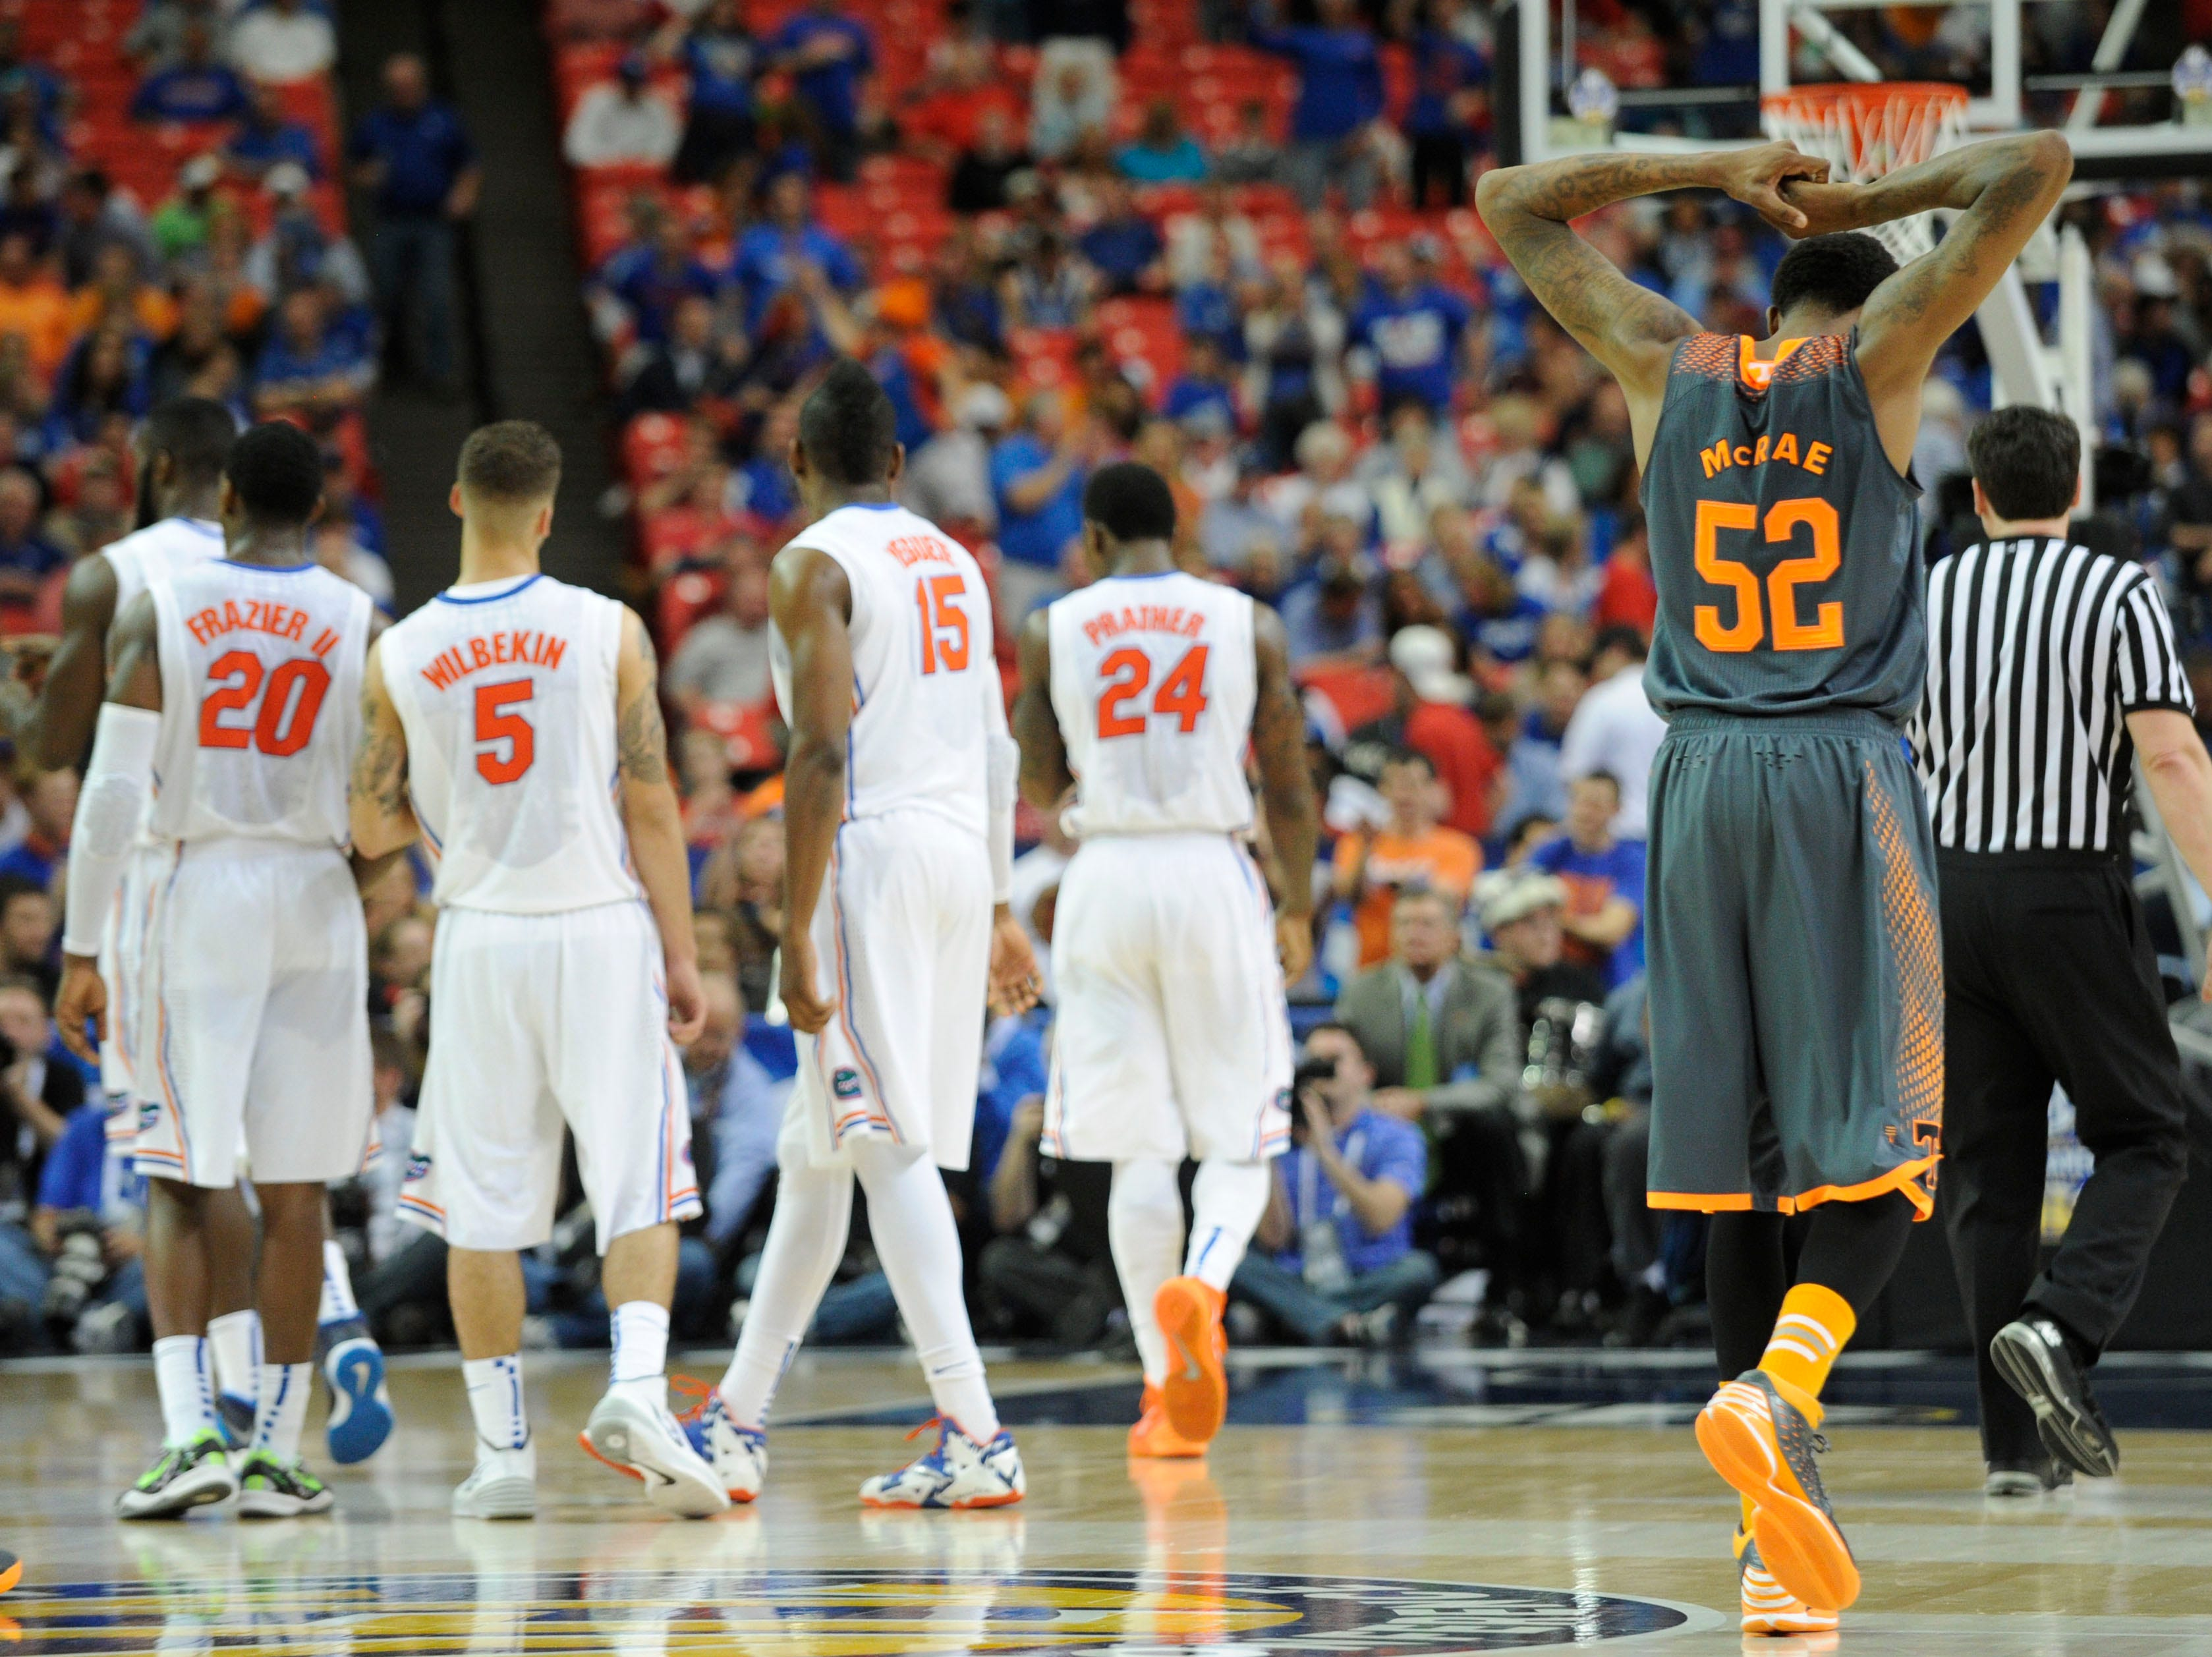 Tennessee guard Jordan McRae (52) wrings his hands in frustration as the final minute ticks down in Tennessee's 56-49 loss to Florida in an SEC tournament semifinal game at the Georgia Dome in Atlanta on Saturday, March 15, 2014.